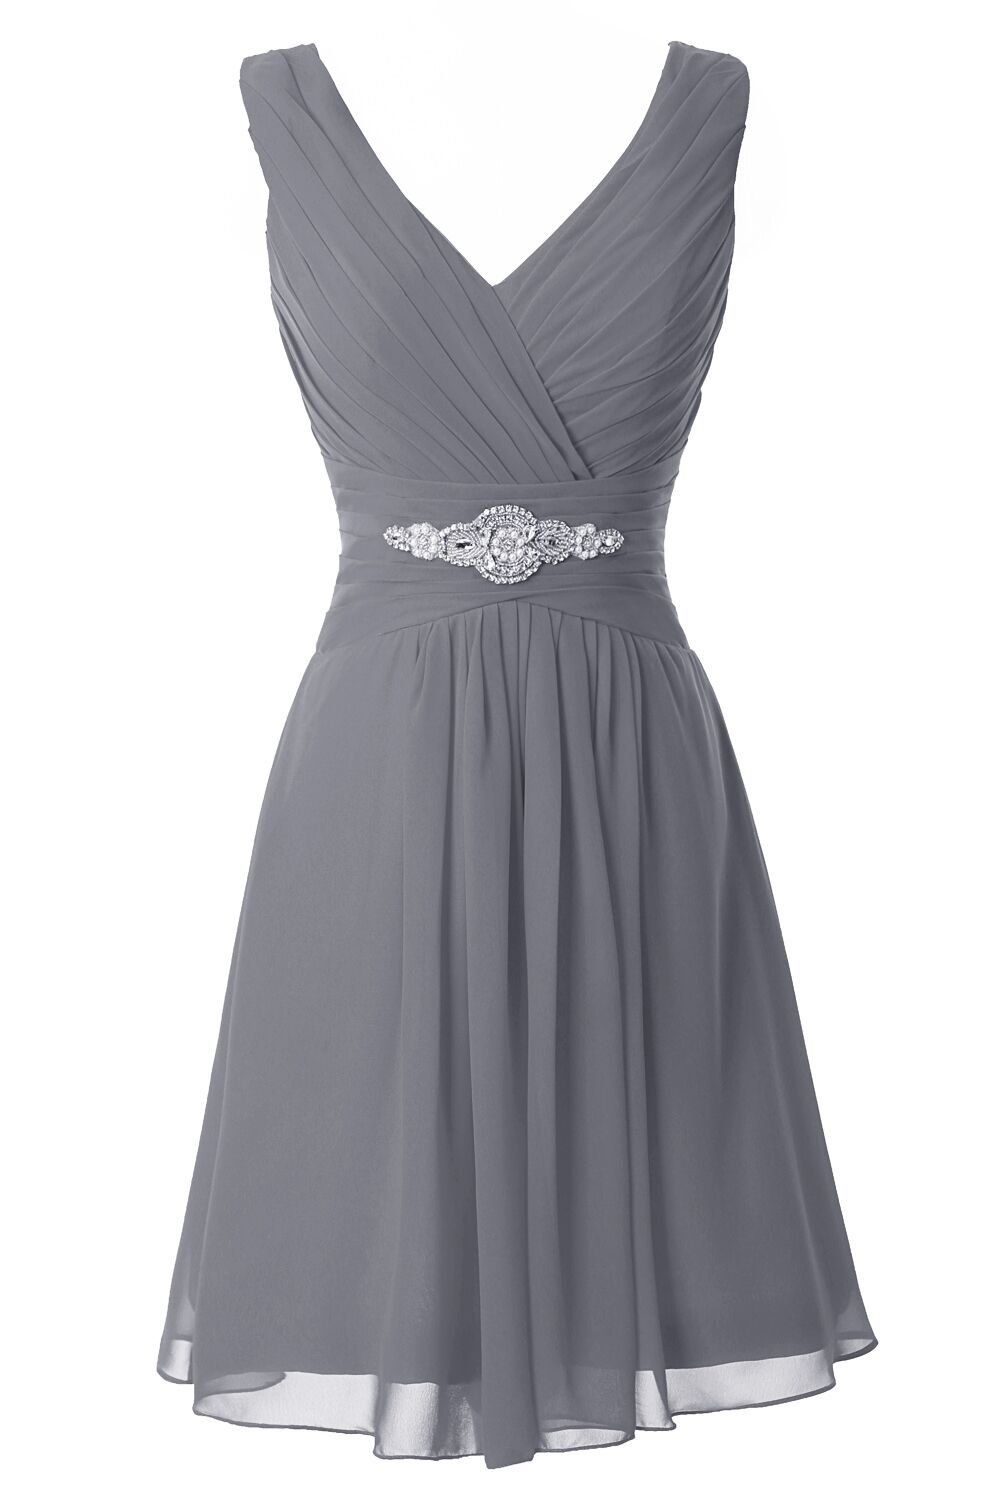 Manfei Women s V-Neck Chiffon Short Bridesmaid Dress Party Dress Gray Size 8 be4de15cfbdb